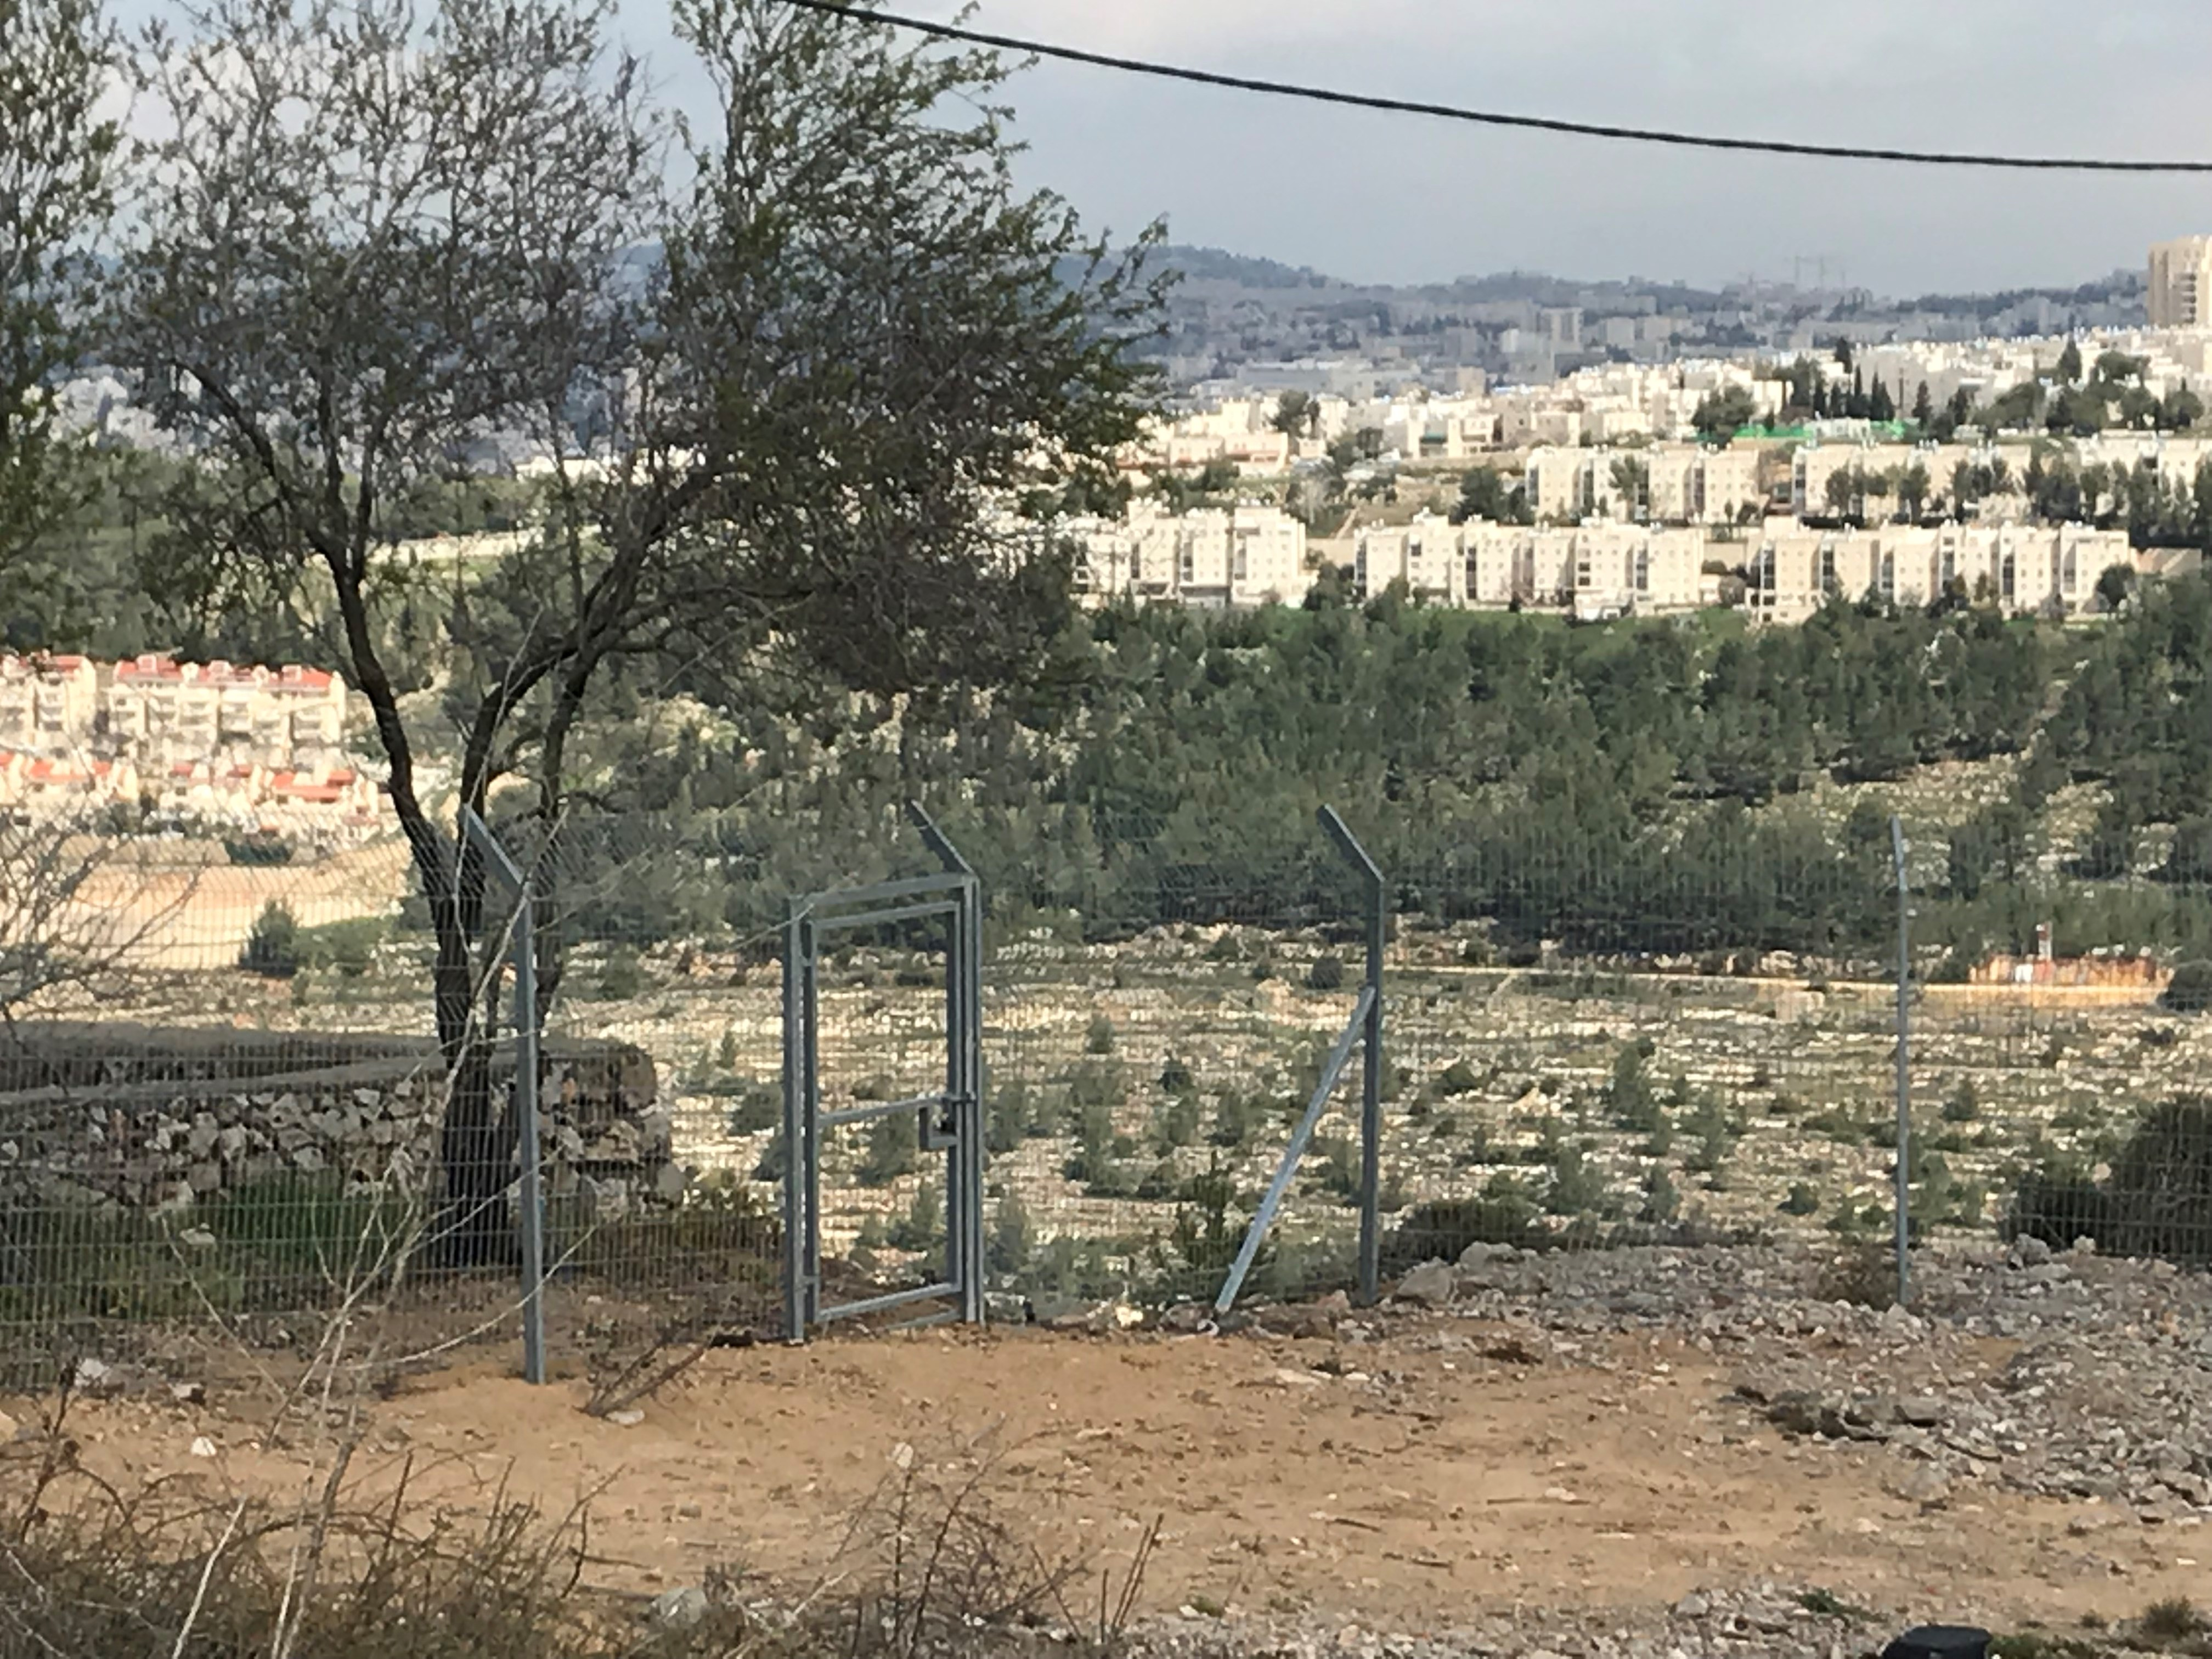 Looking into Jerusalem from Har Gilo.